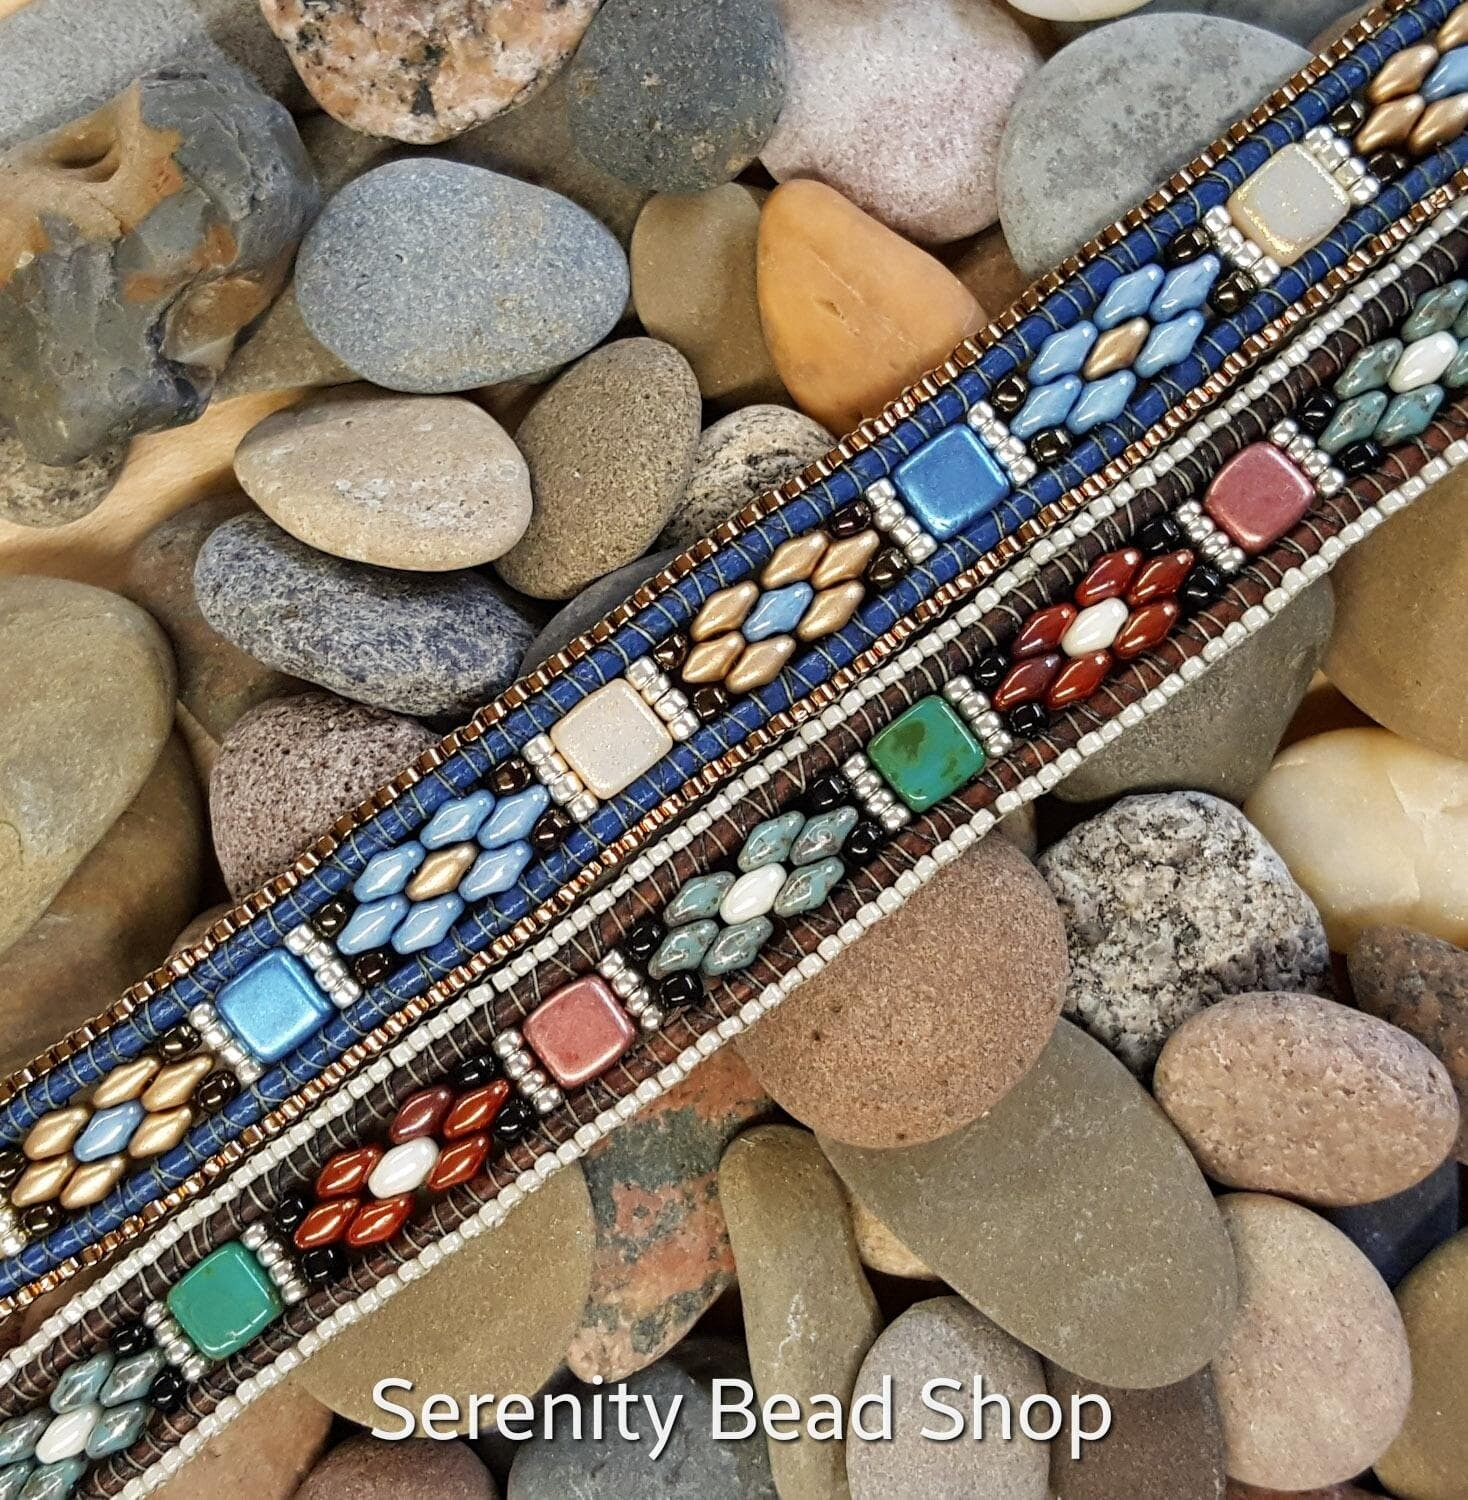 _____Mosaic Leather Wrap_____ Saturday, March 14th * Noon - 3:30